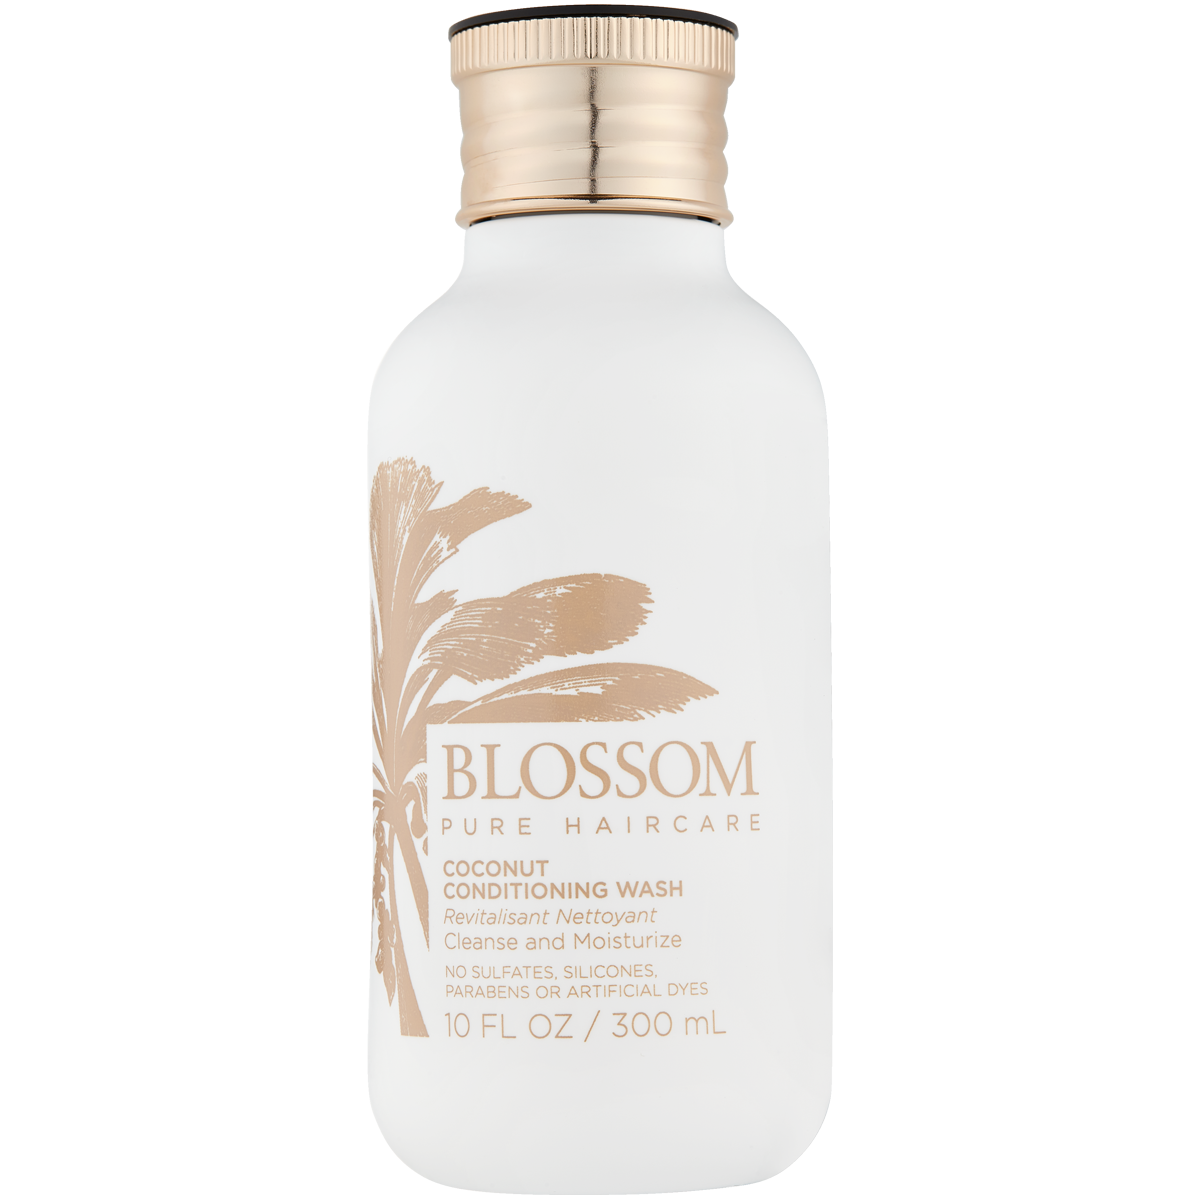 Blossom Coconut Conditioning Wash